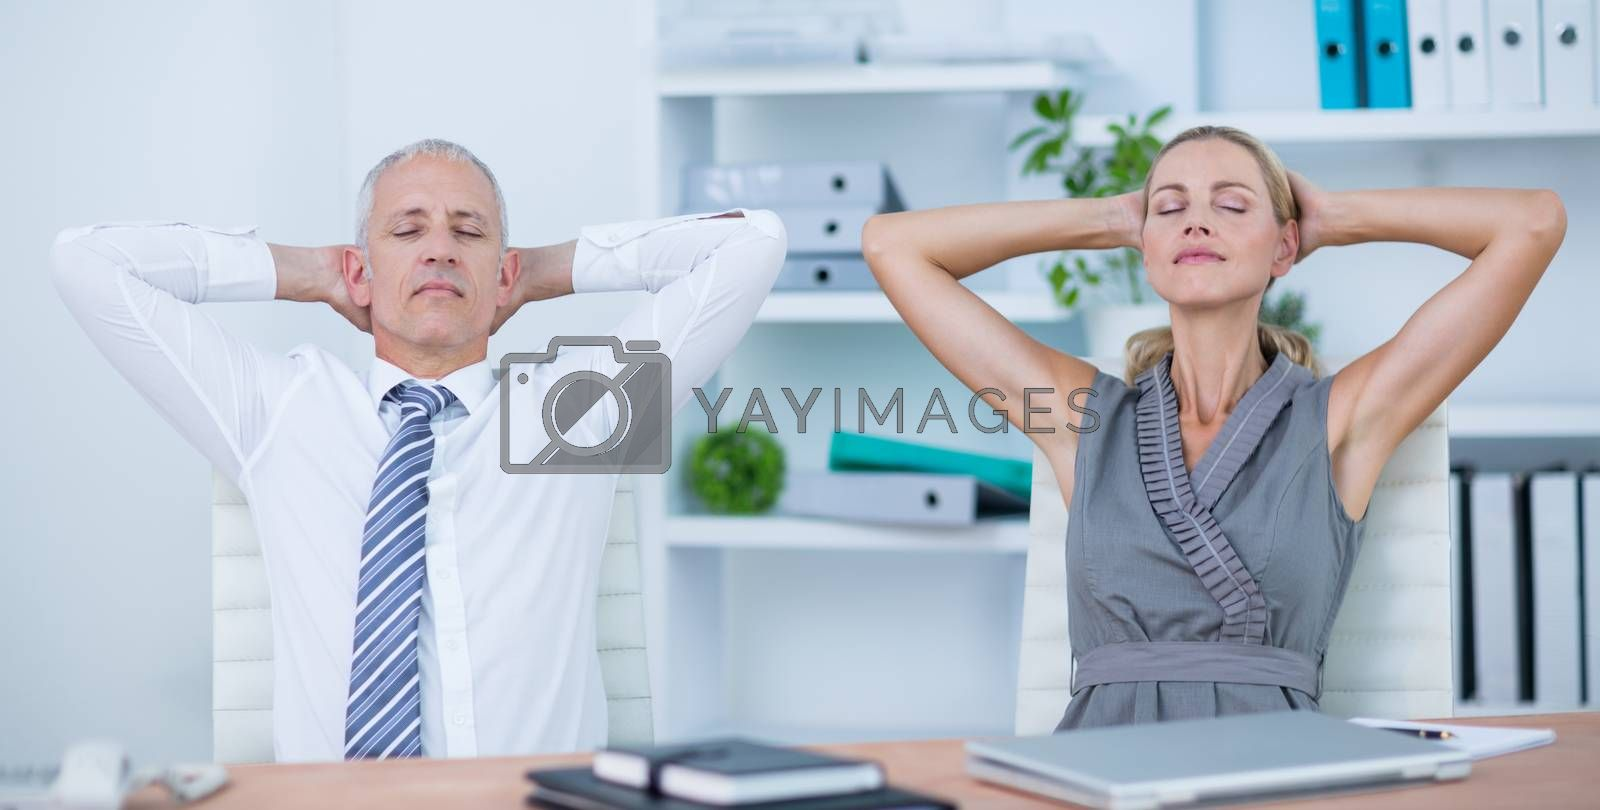 Royalty free image of Business people relaxing in swivel chairs by Wavebreakmedia